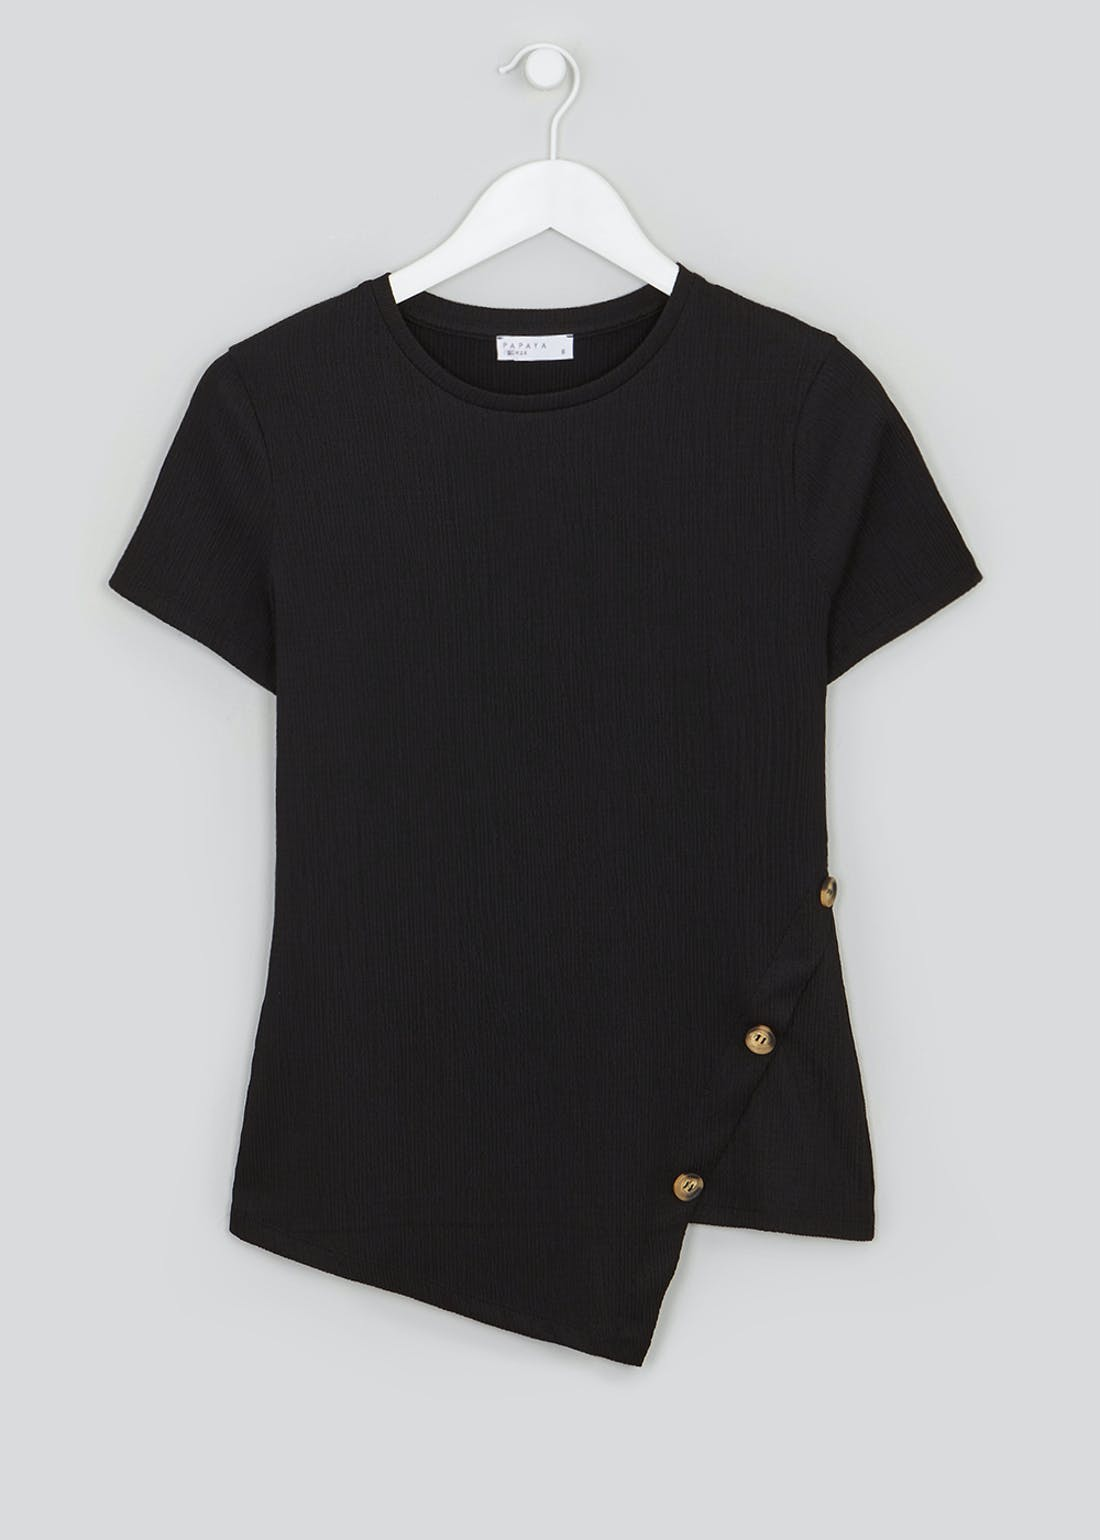 Asymmetric Button Co-Ord T-Shirt